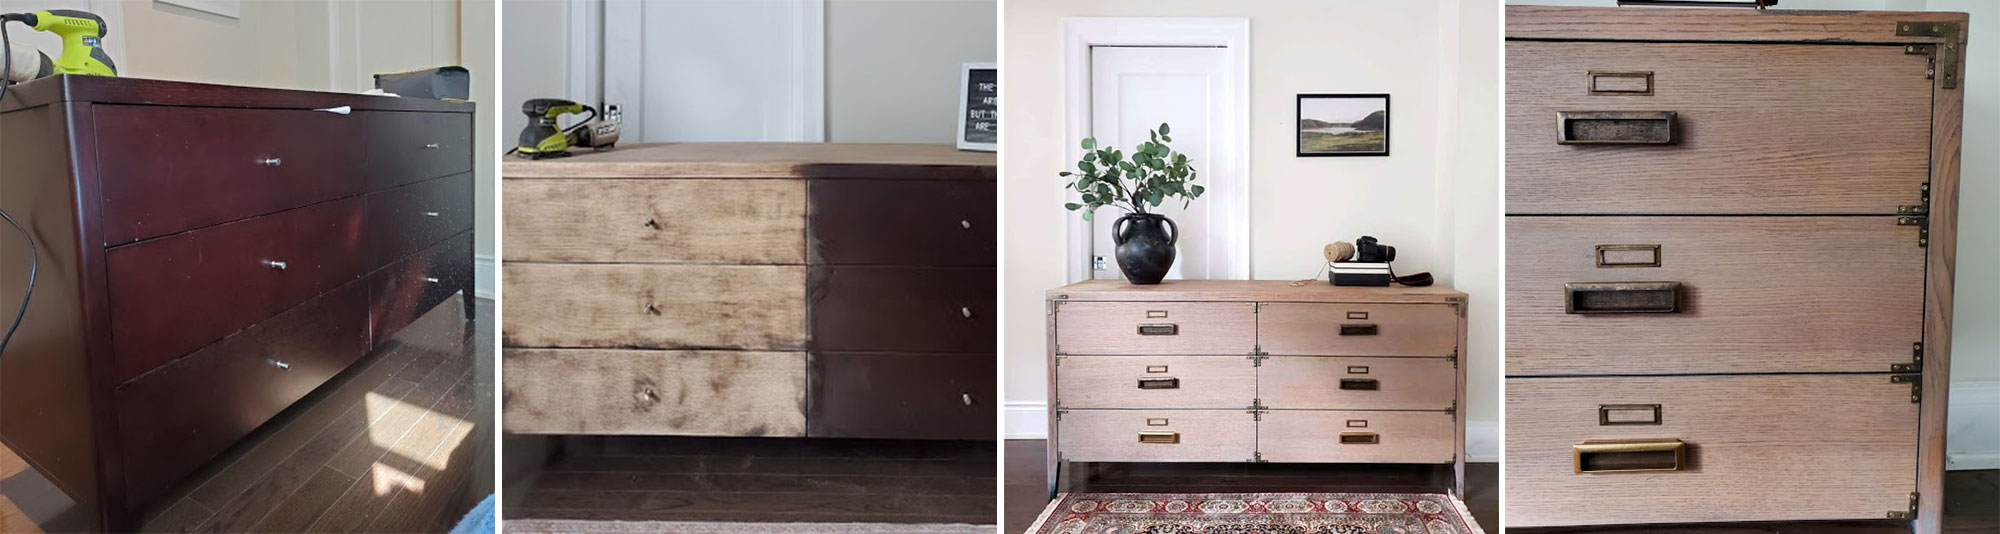 Some before and after pictures of the dresser.